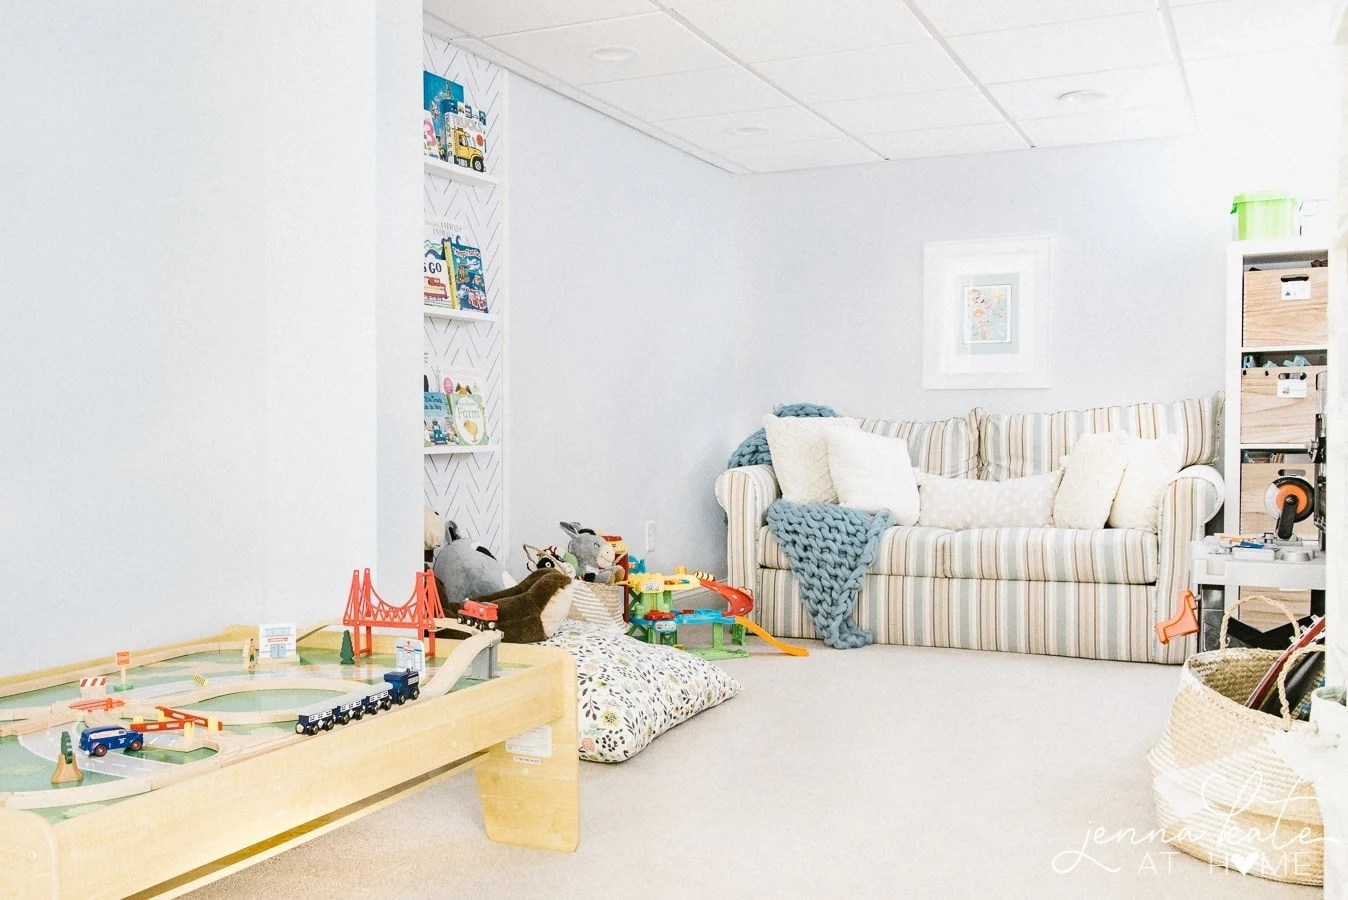 How to set up a playroom for toddlers that's organized and free of clutter